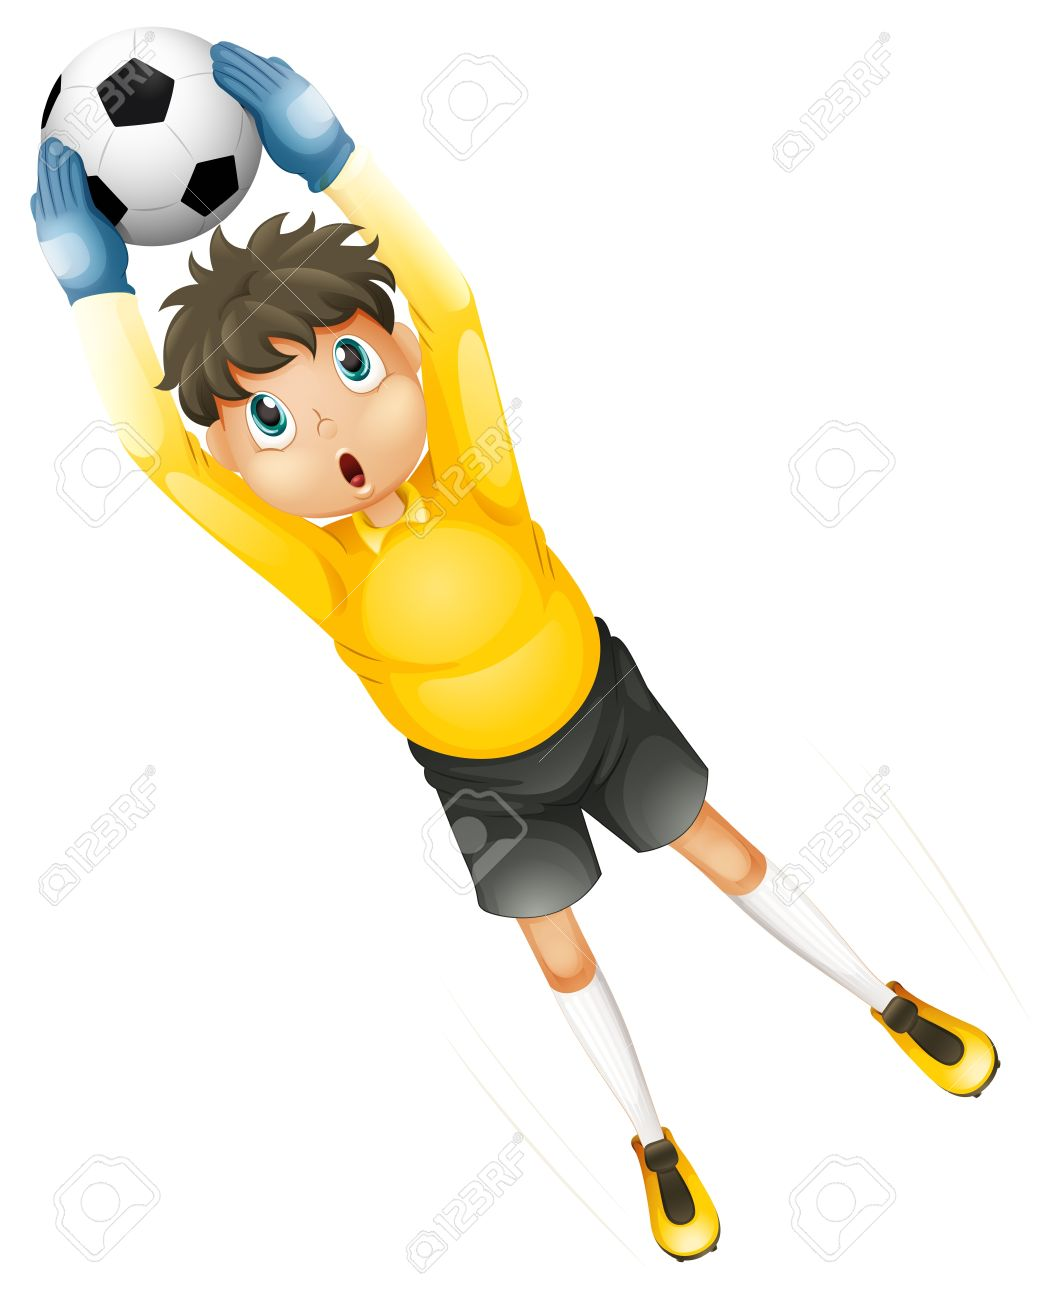 Illustration of a little football player catching the ball on a white background Stock Vector - 20140518